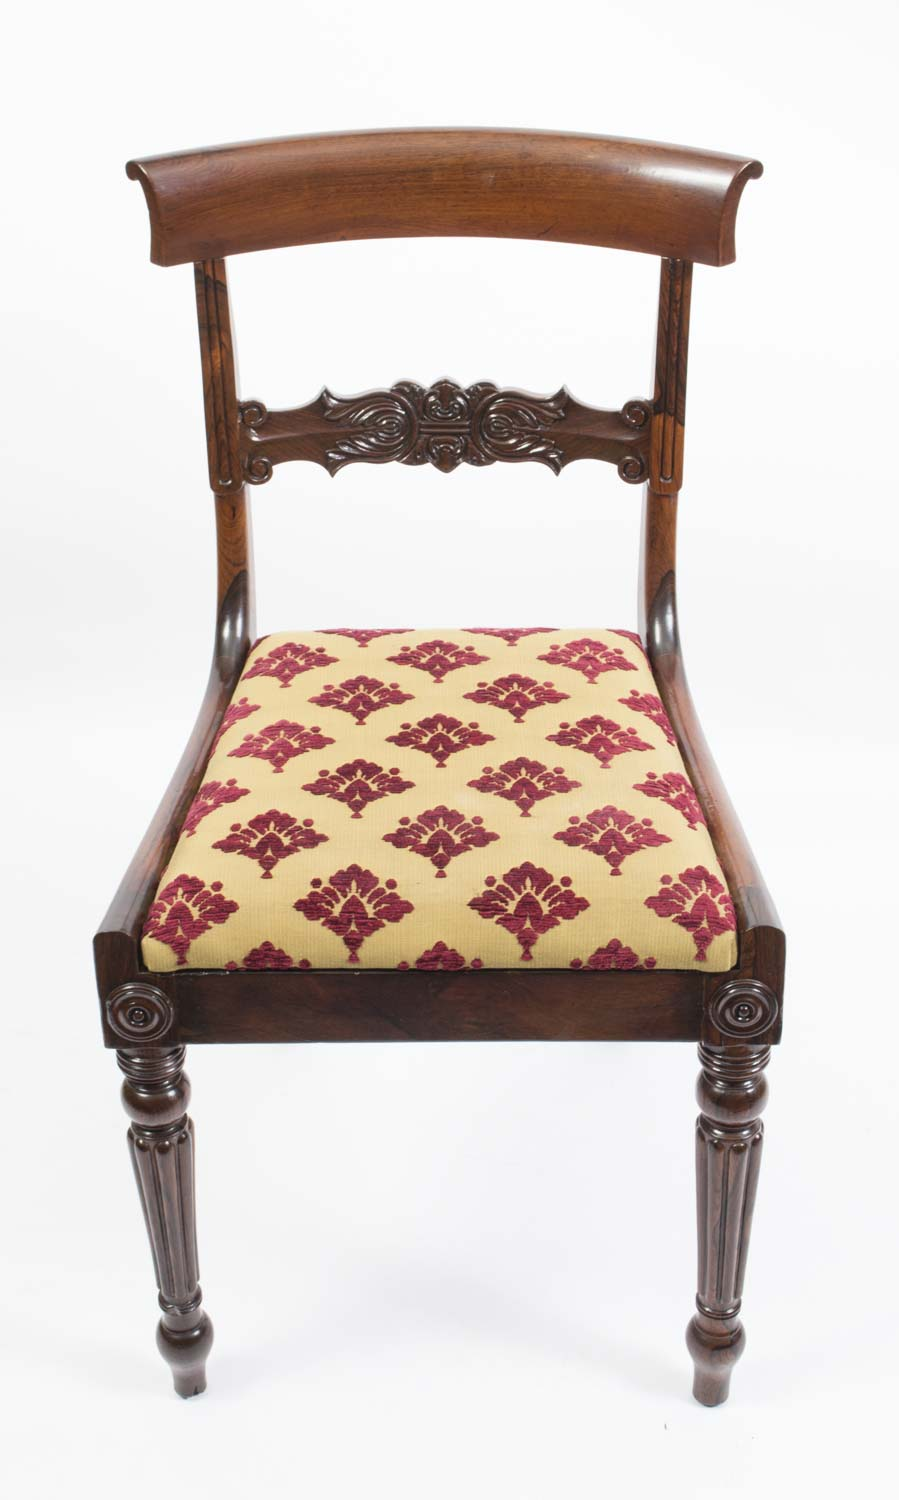 Regent Antiques Dining tables and chairs Dining chairs  : 06383 Antique Set 6 William IV Rosewood Dining Chairs c1835 18 from regentantiques.com size 899 x 1500 jpeg 111kB